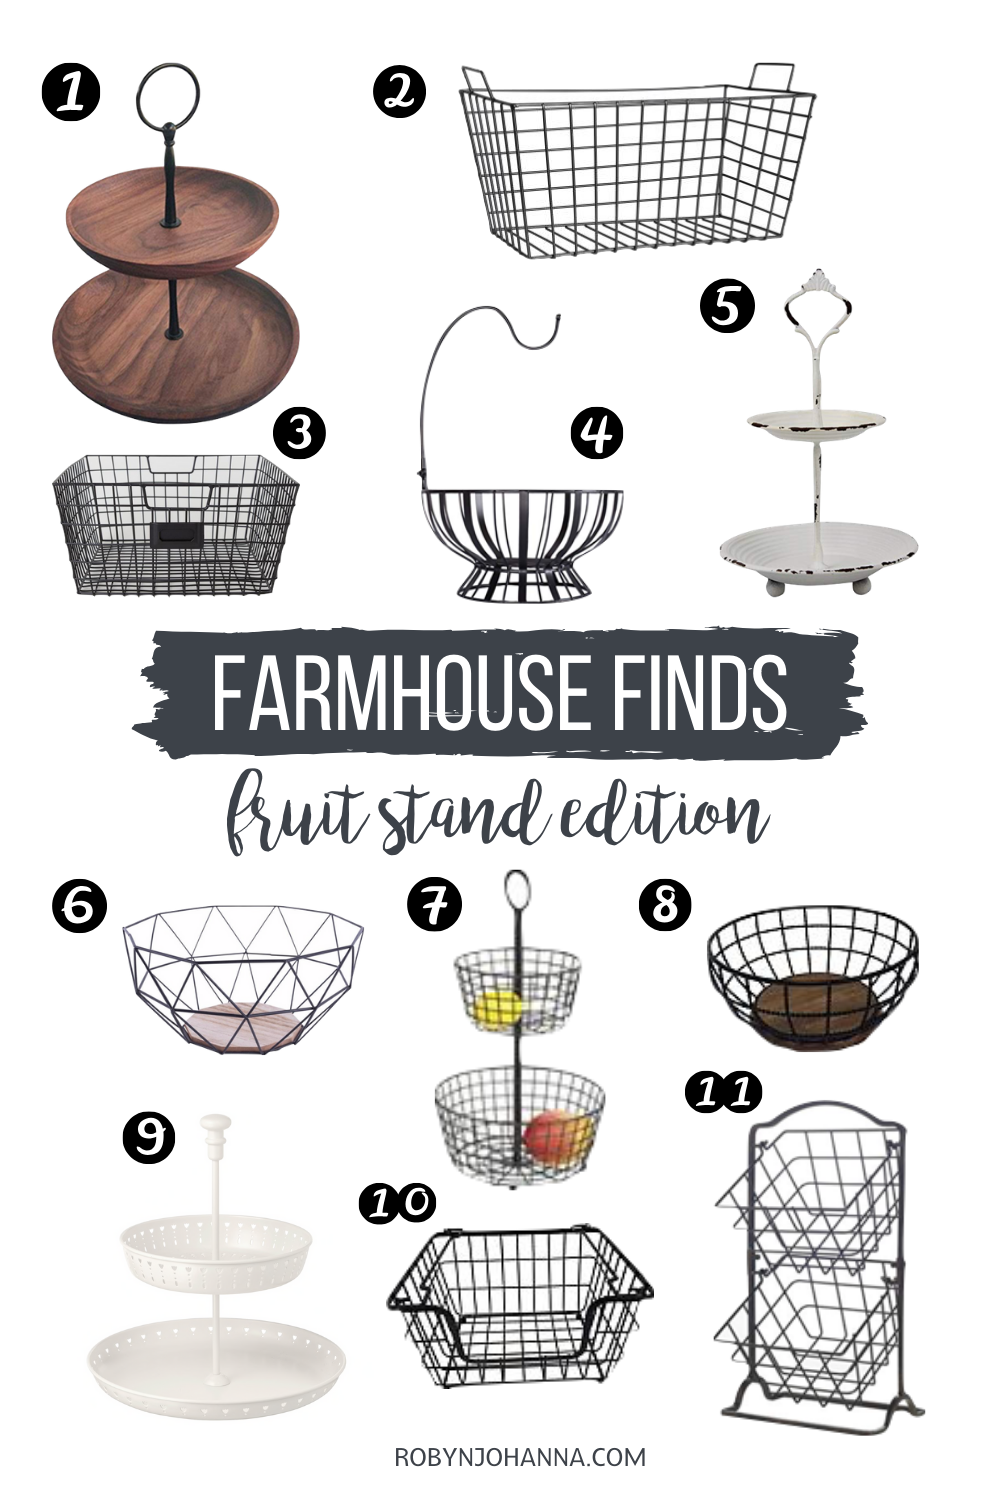 On the search for a farmhouse fruit stand? Look no further. I've got you covered! Check out my favourite farmhouse finds ranging from $9 to $40.